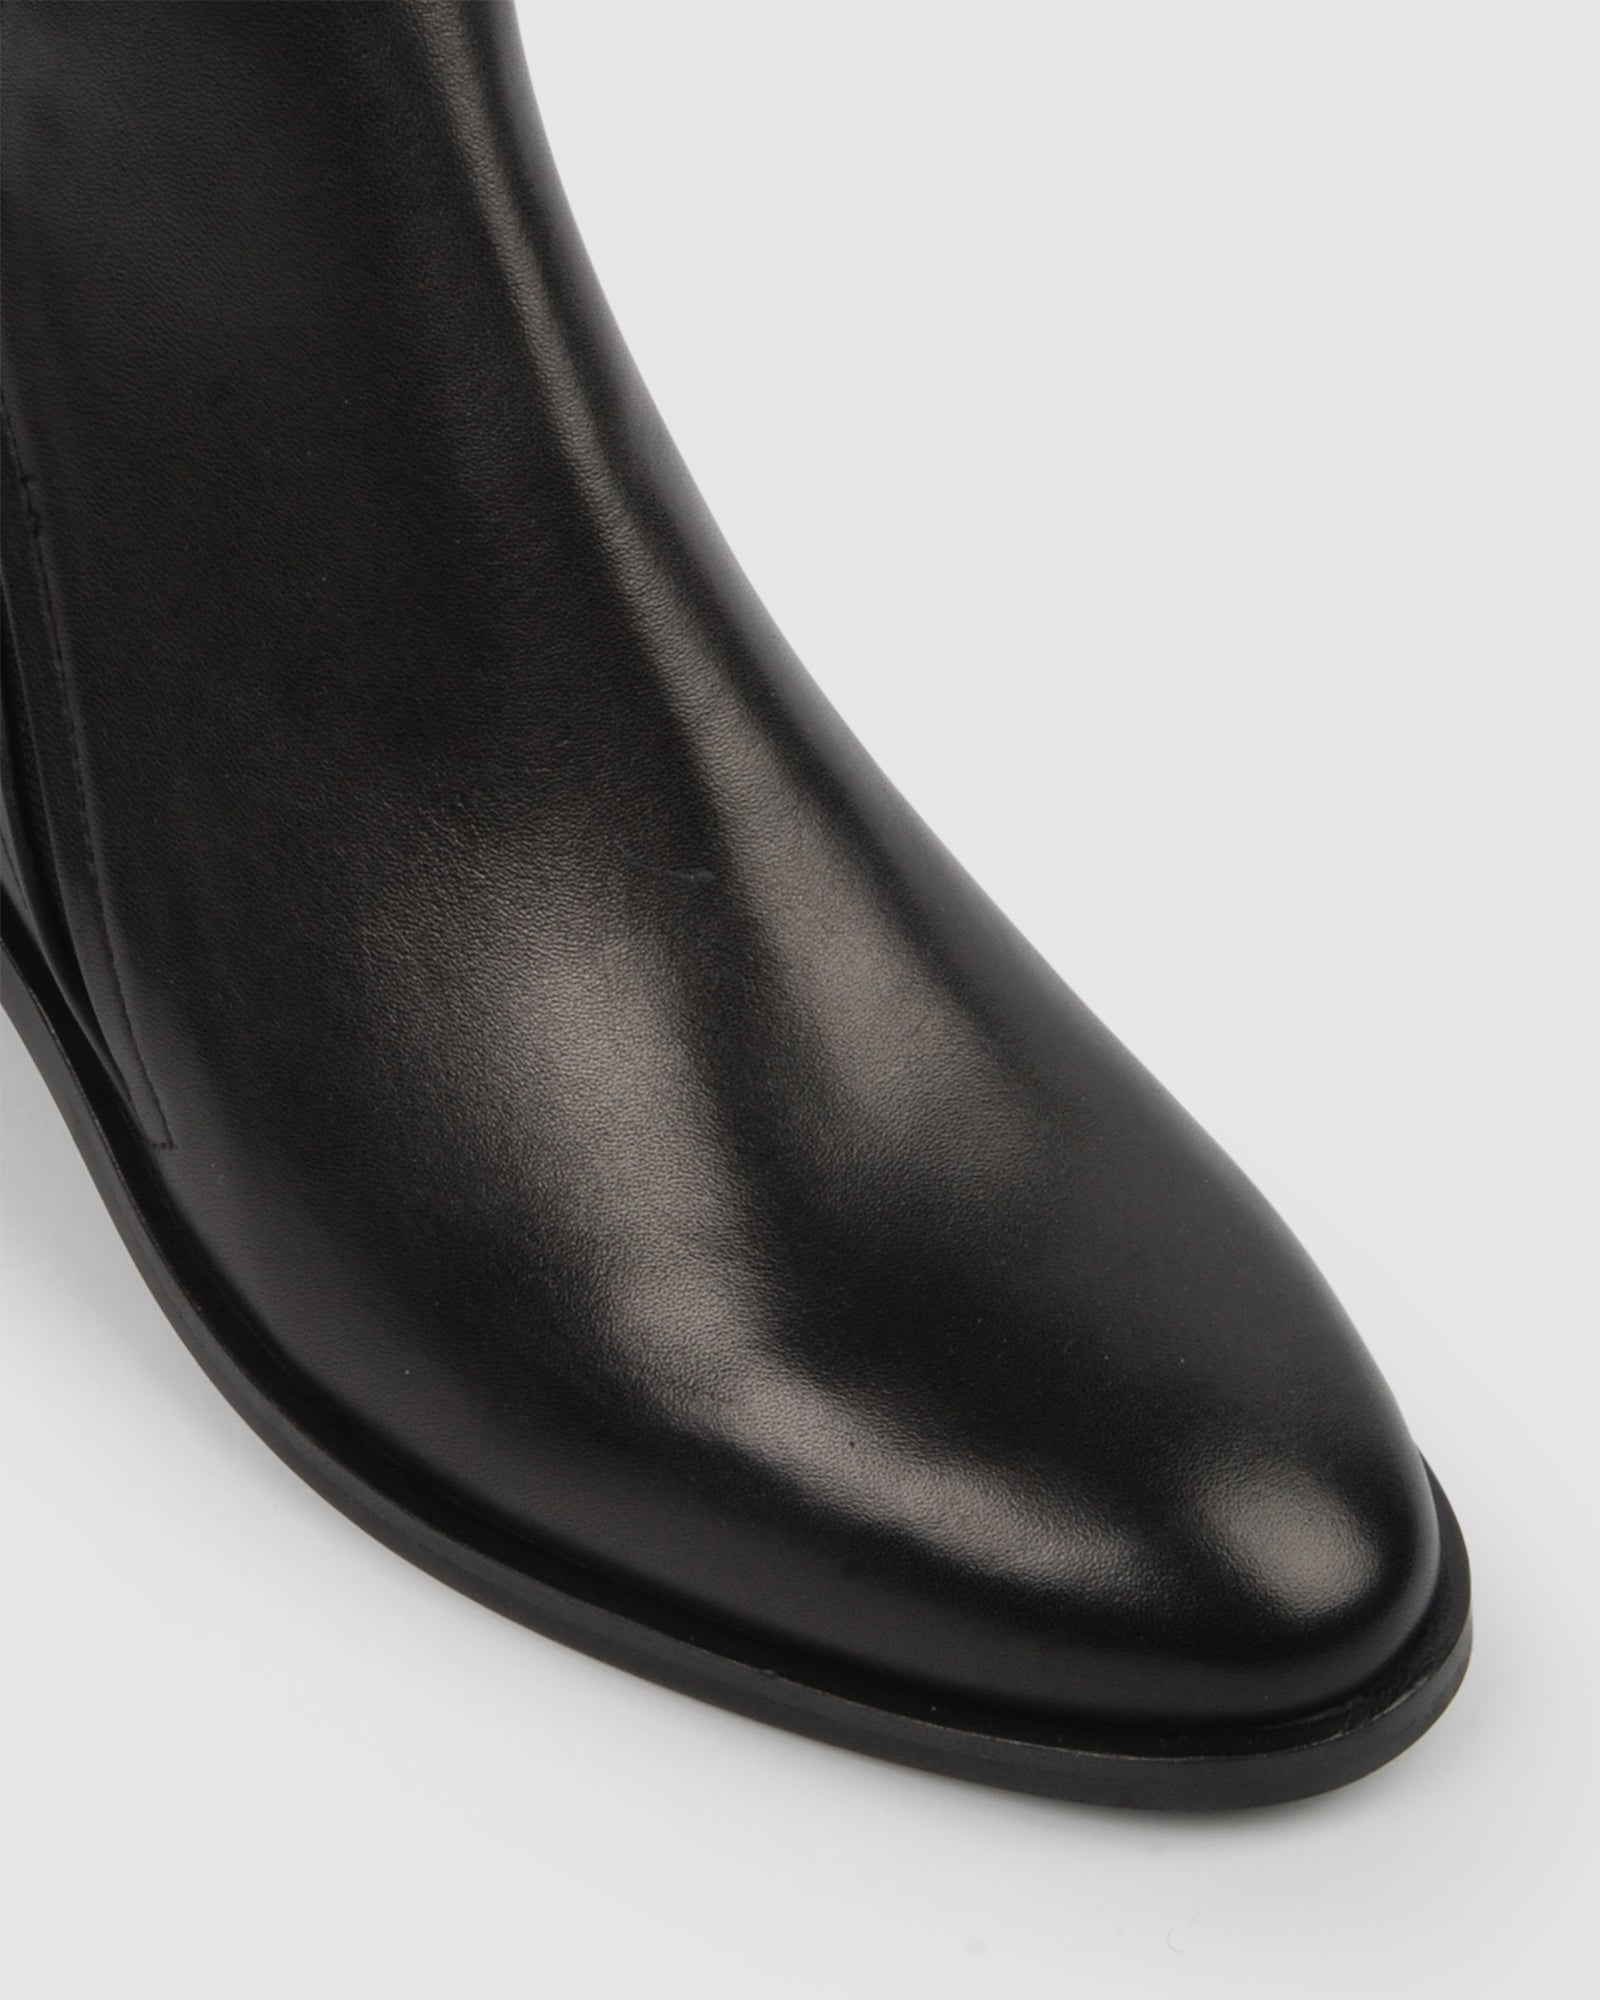 ASPEN FLAT ANKLE BOOTS BLACK LEATHER